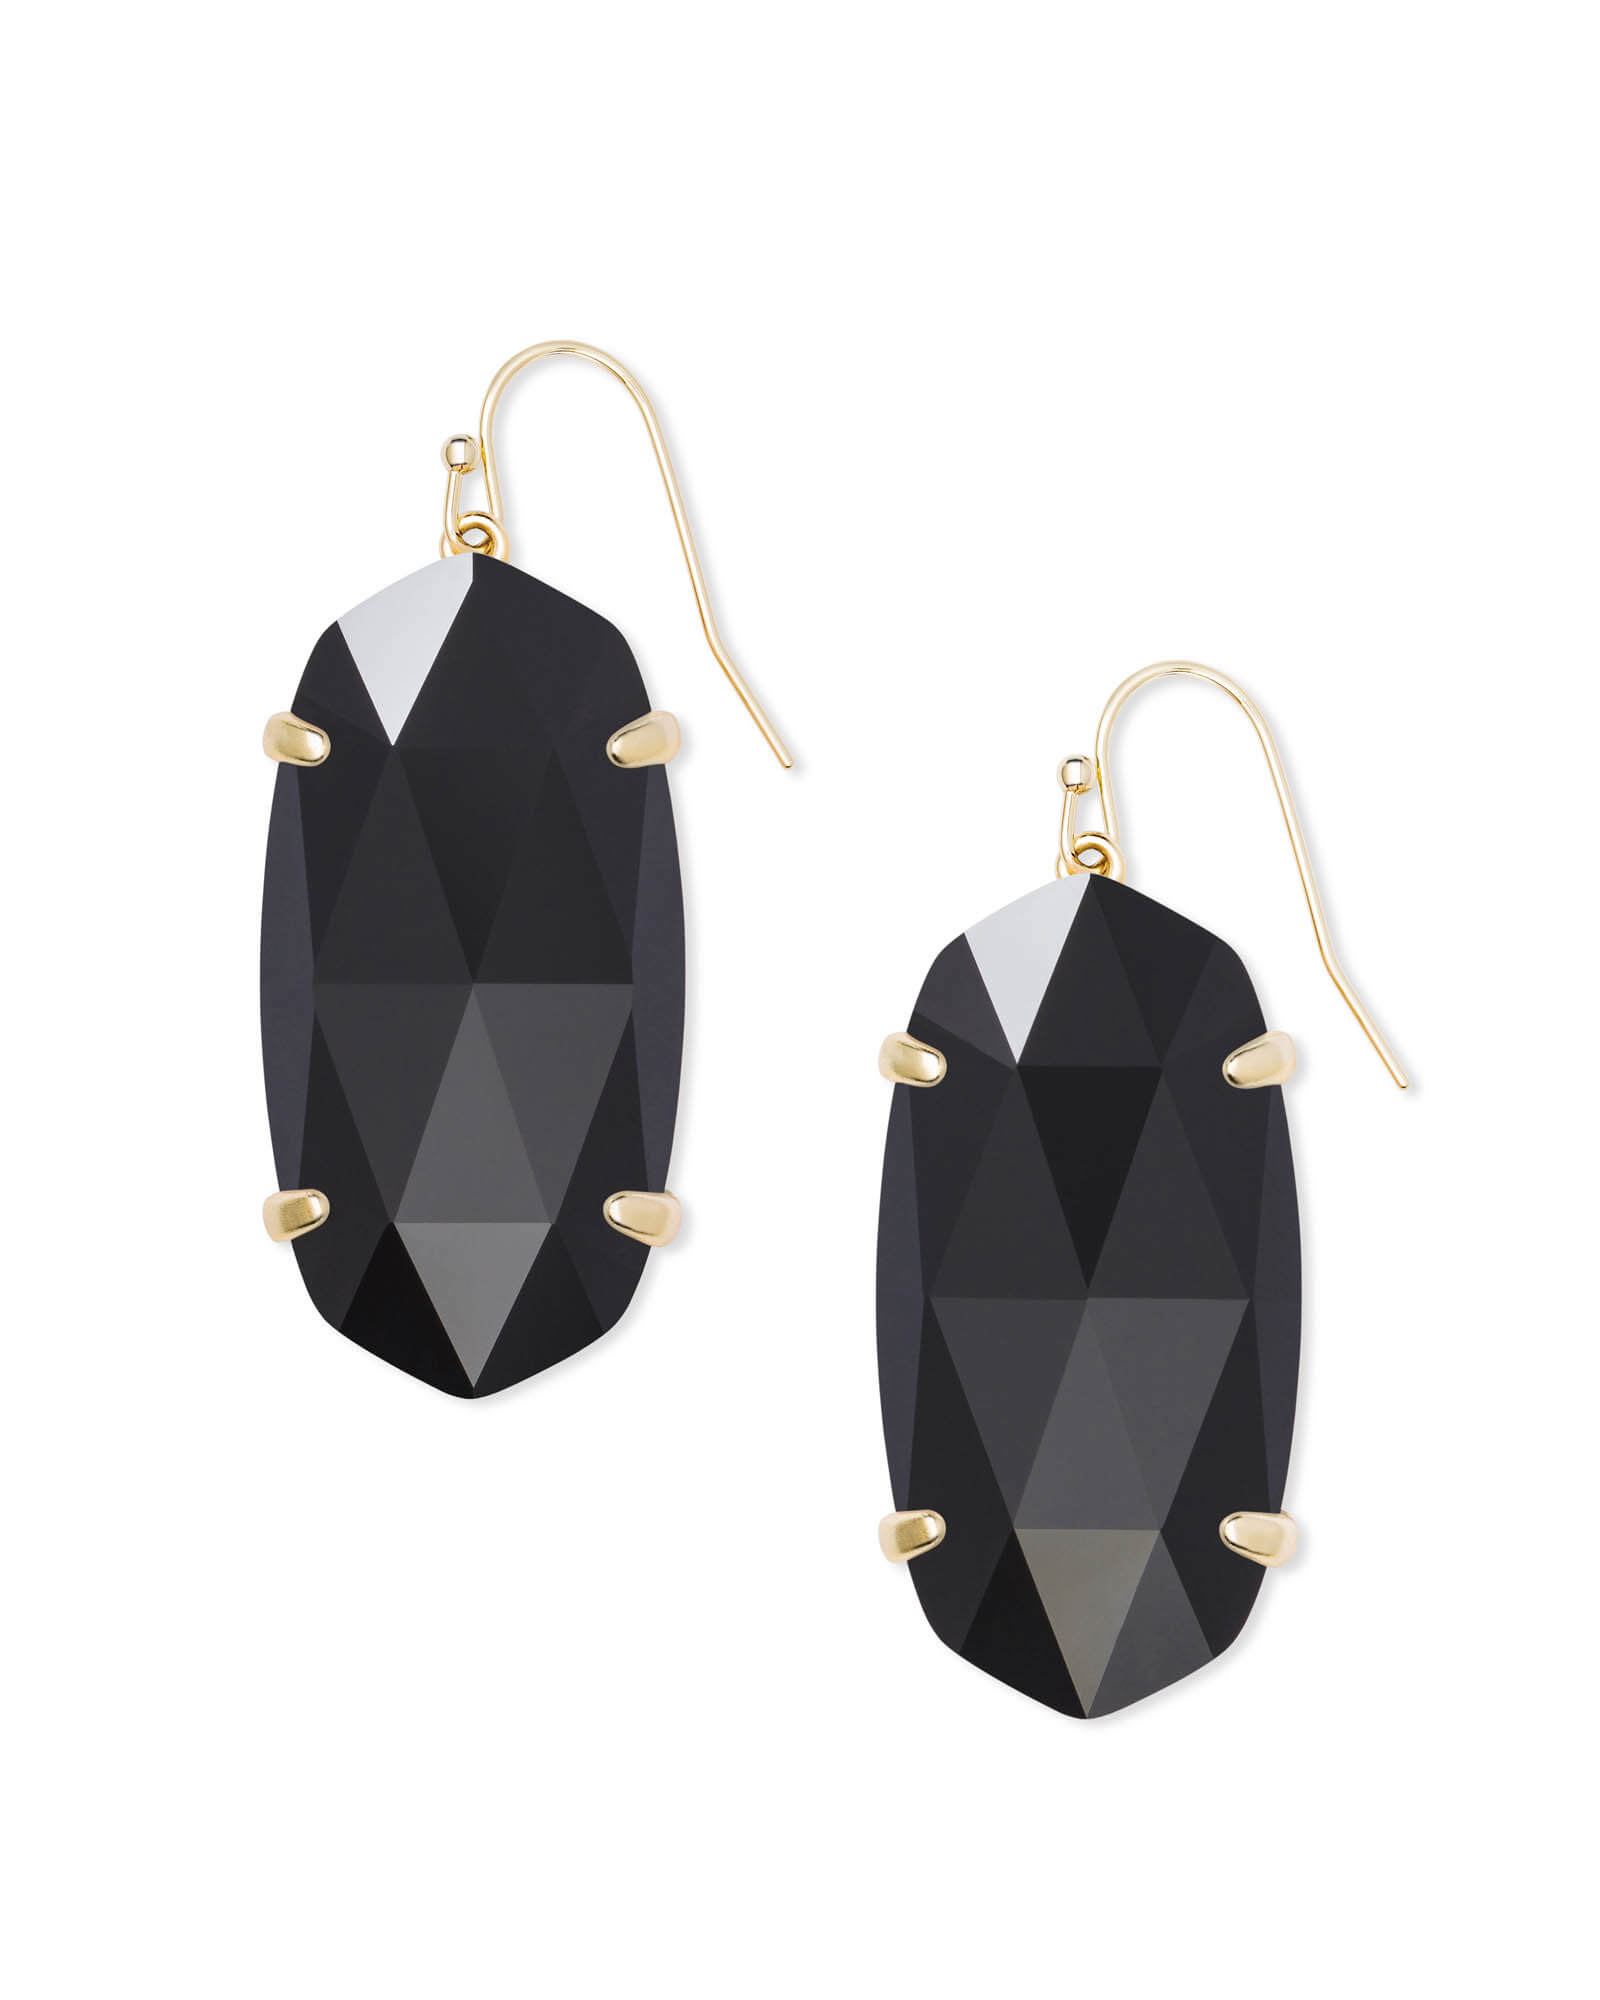 Esme Gold Drop Earrings In Black Opaque Glass